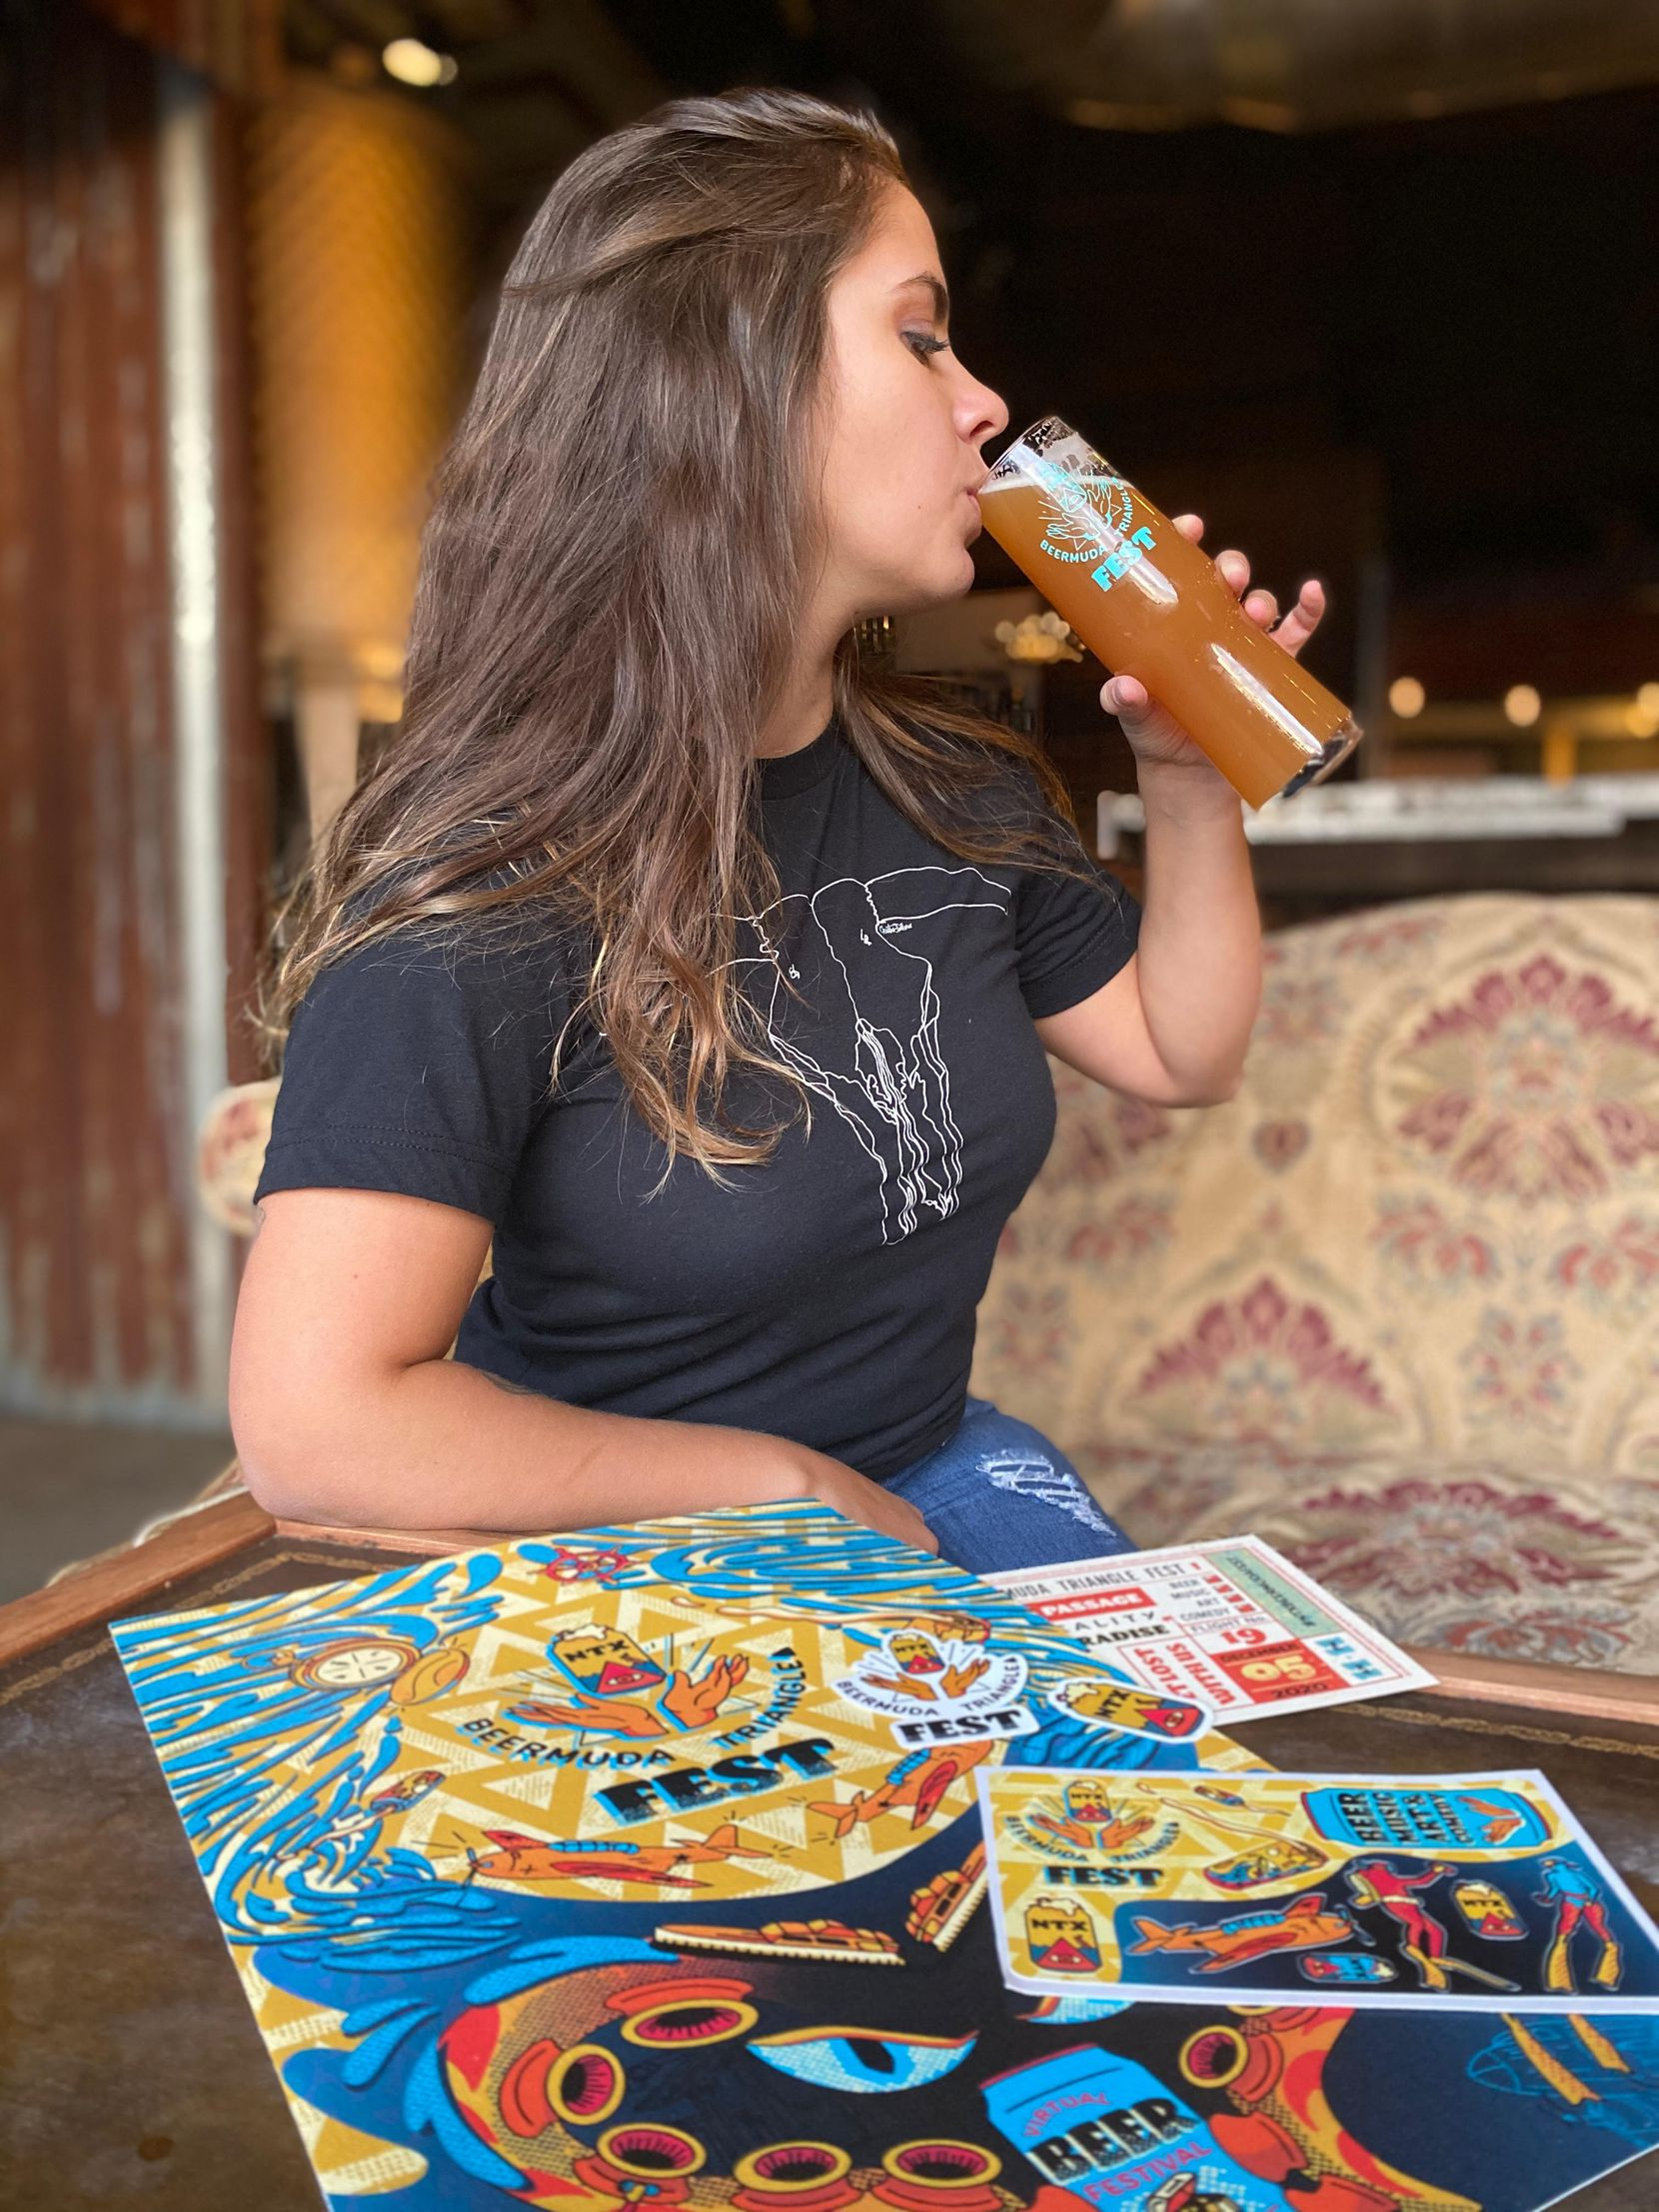 The 2020 virtual NTX Beermuda Triangle Festival has been organized by women in the beer industry.